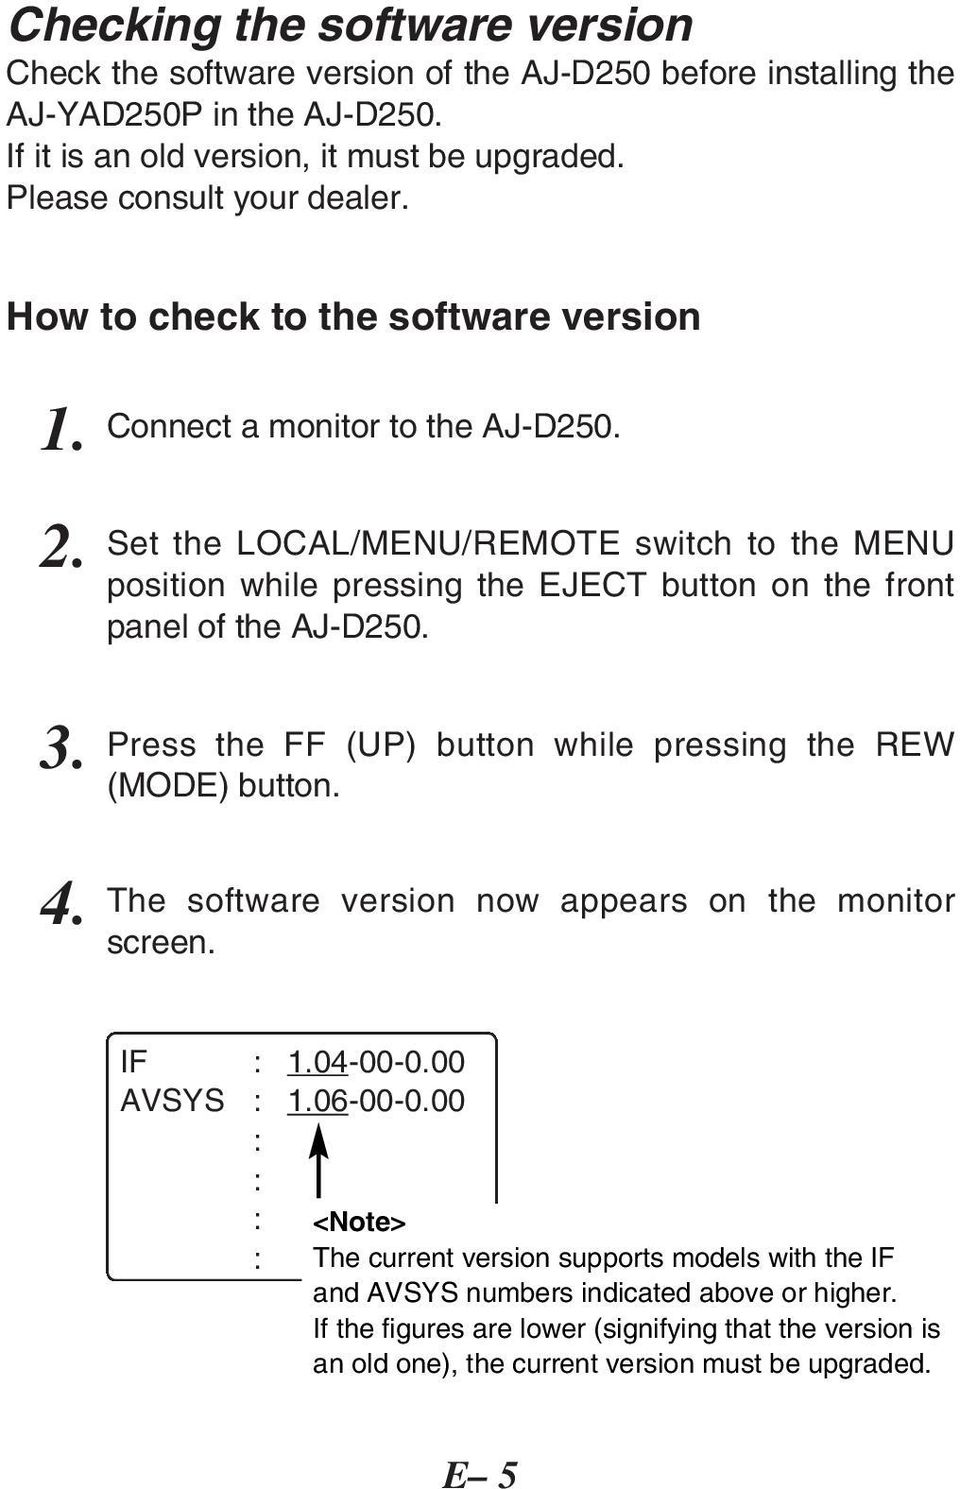 Set the LOCAL/MENU/REMOTE switch to the MENU position while pressing the EJECT button on the front panel of the AJ-D250. Press the FF (UP) button while pressing the REW (MODE) button.